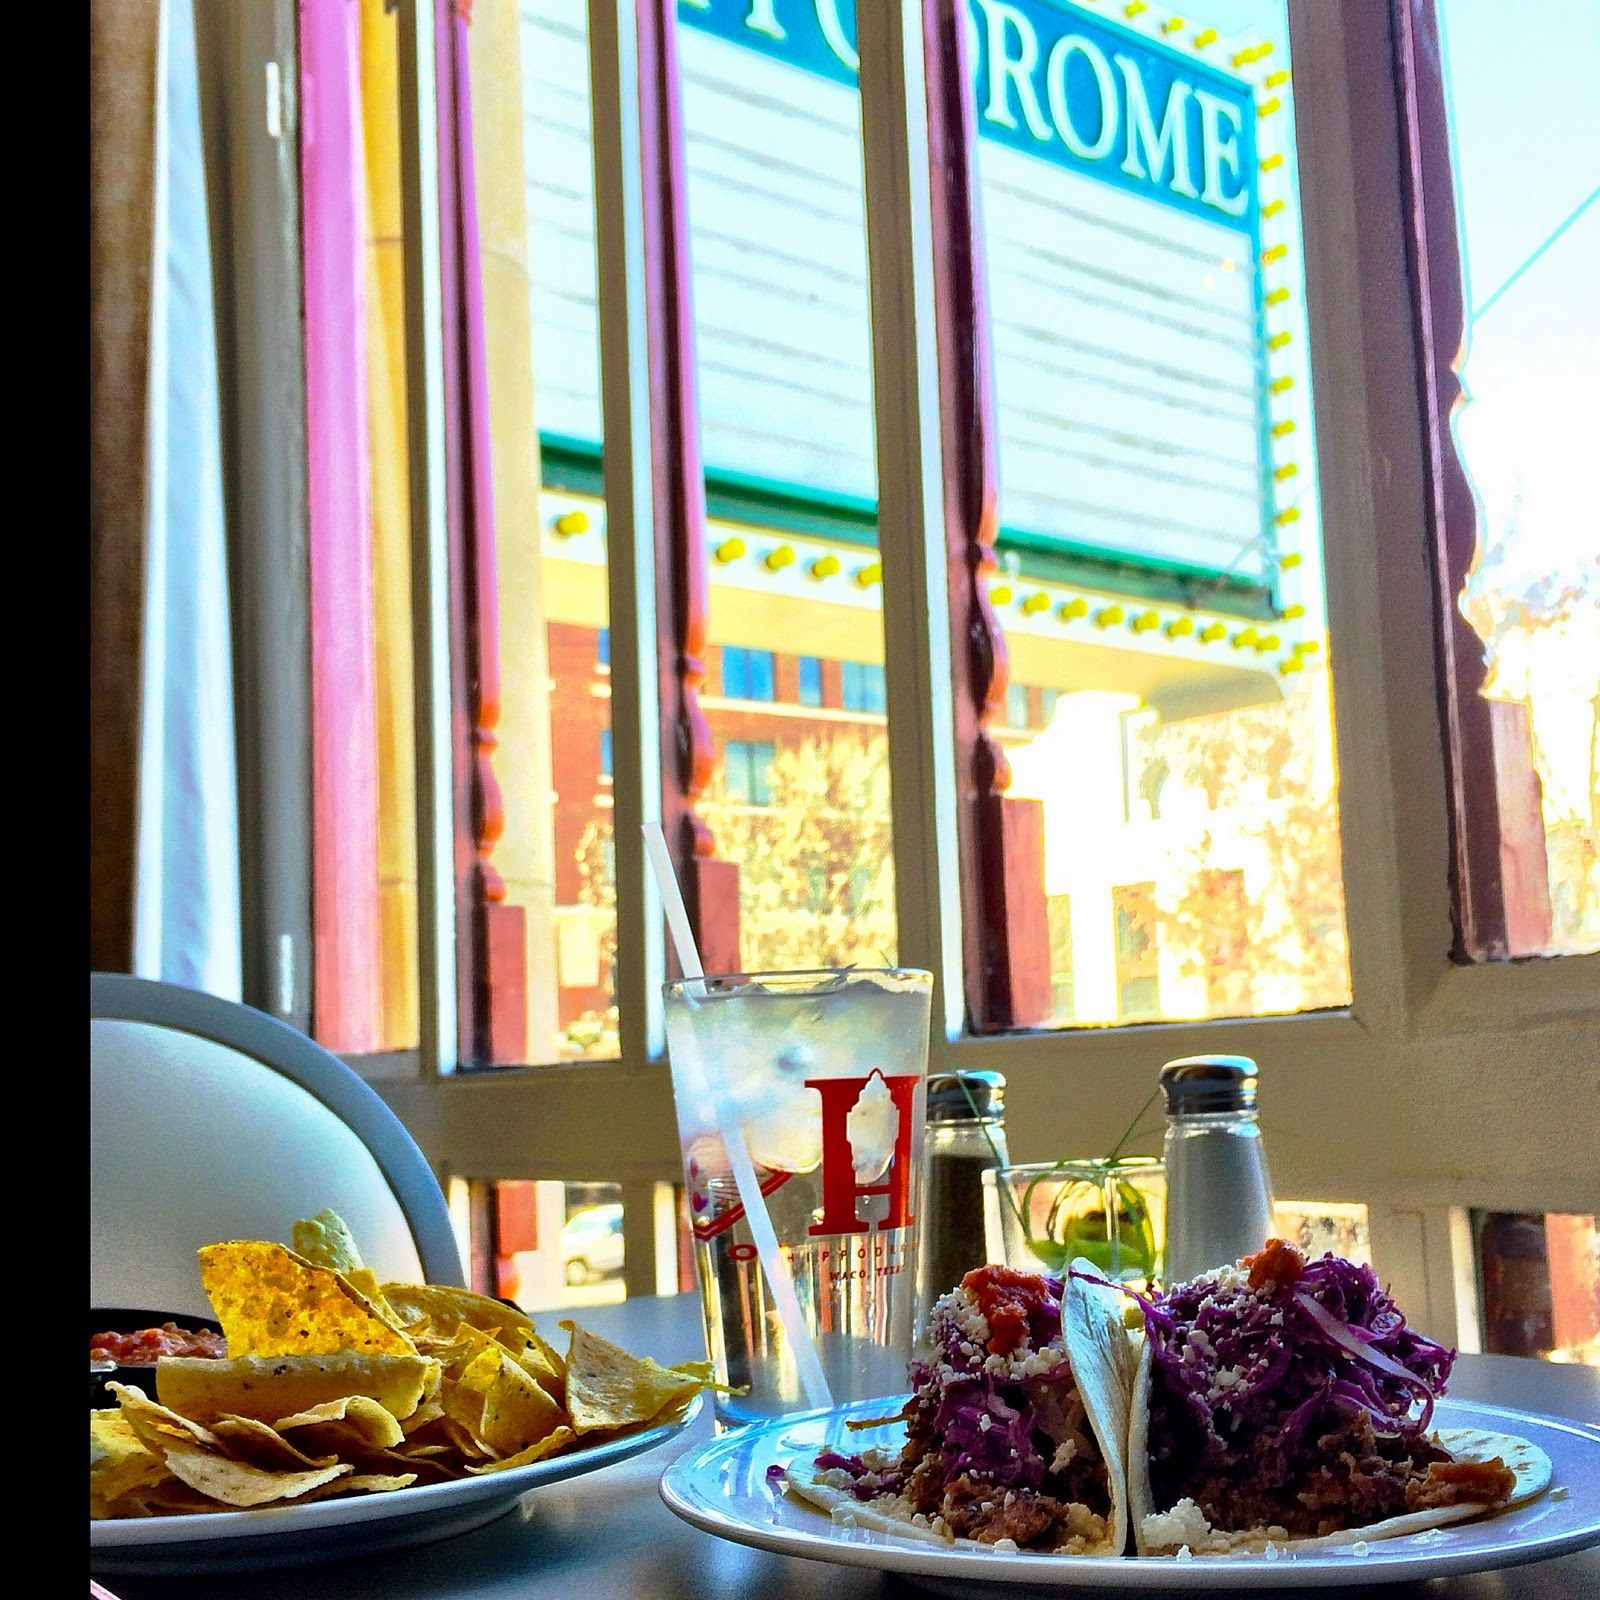 Doskogirl waco hippodrome theatre dining in downtown